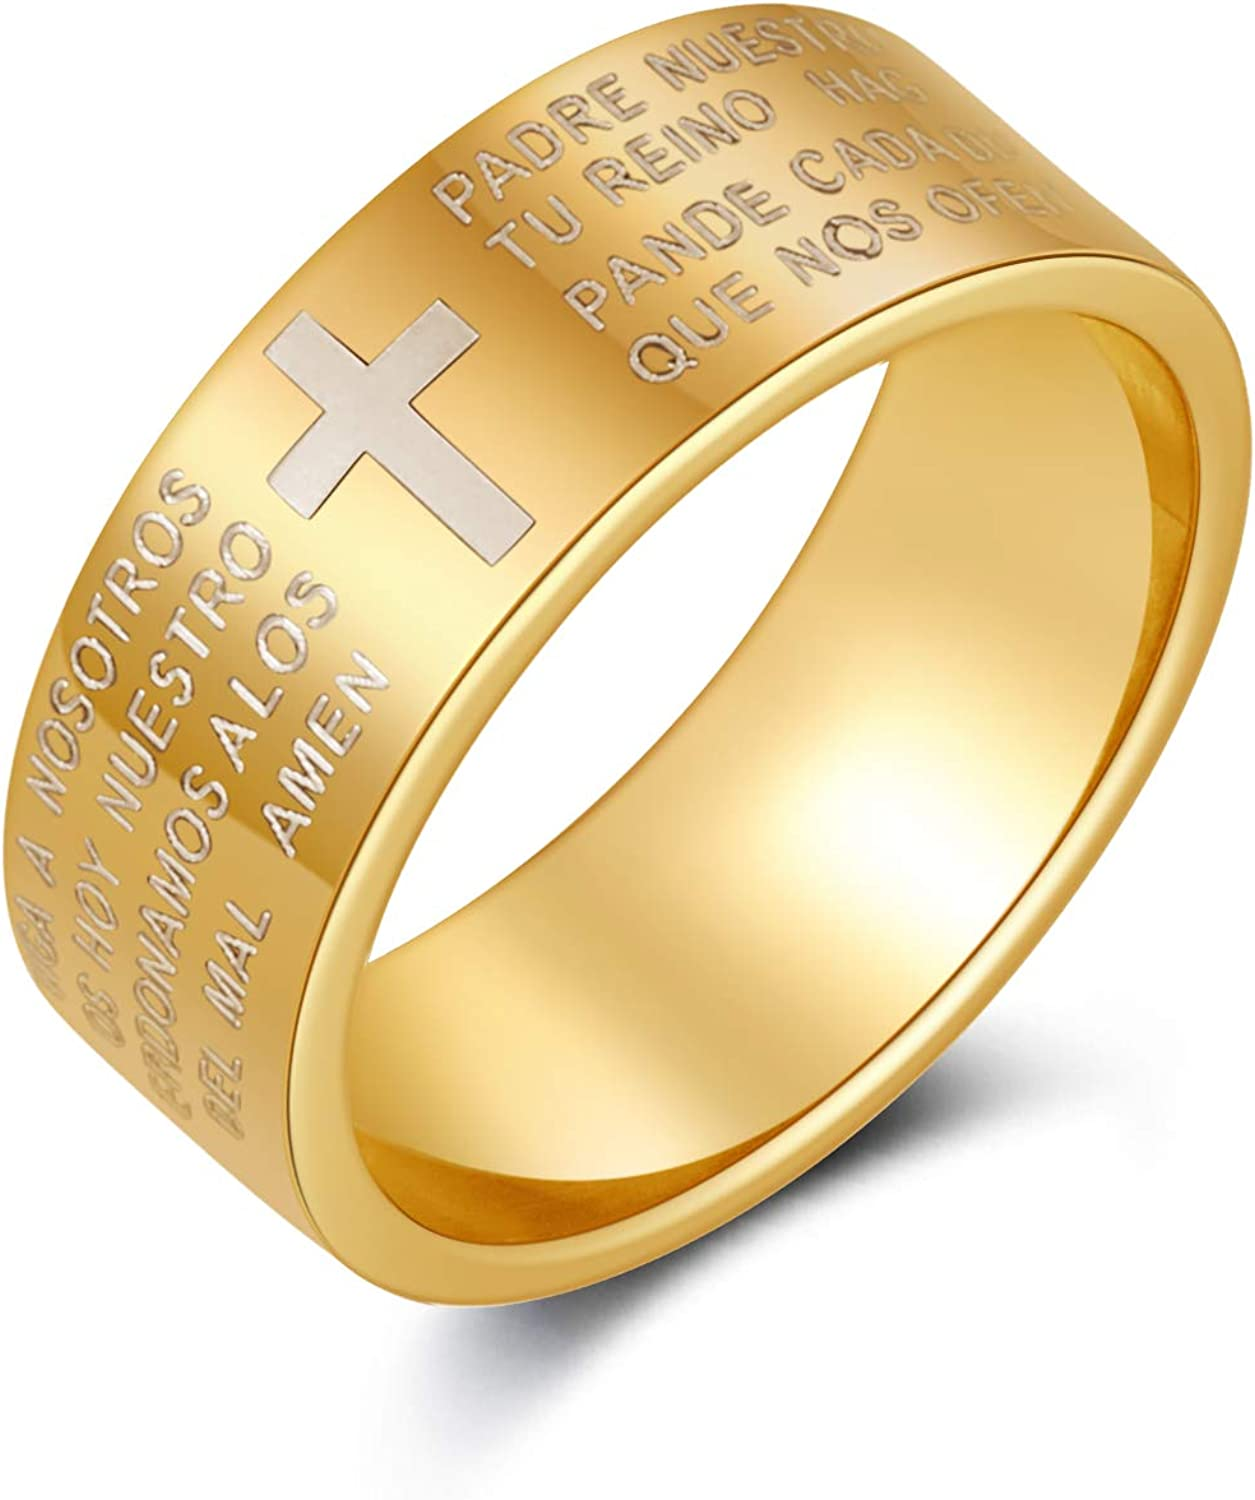 8mm Men's Stainless Steel Bible Scripture Christian Lord's Prayer Cross Ring Wedding Ring Laser Engraved 4 Colors Available